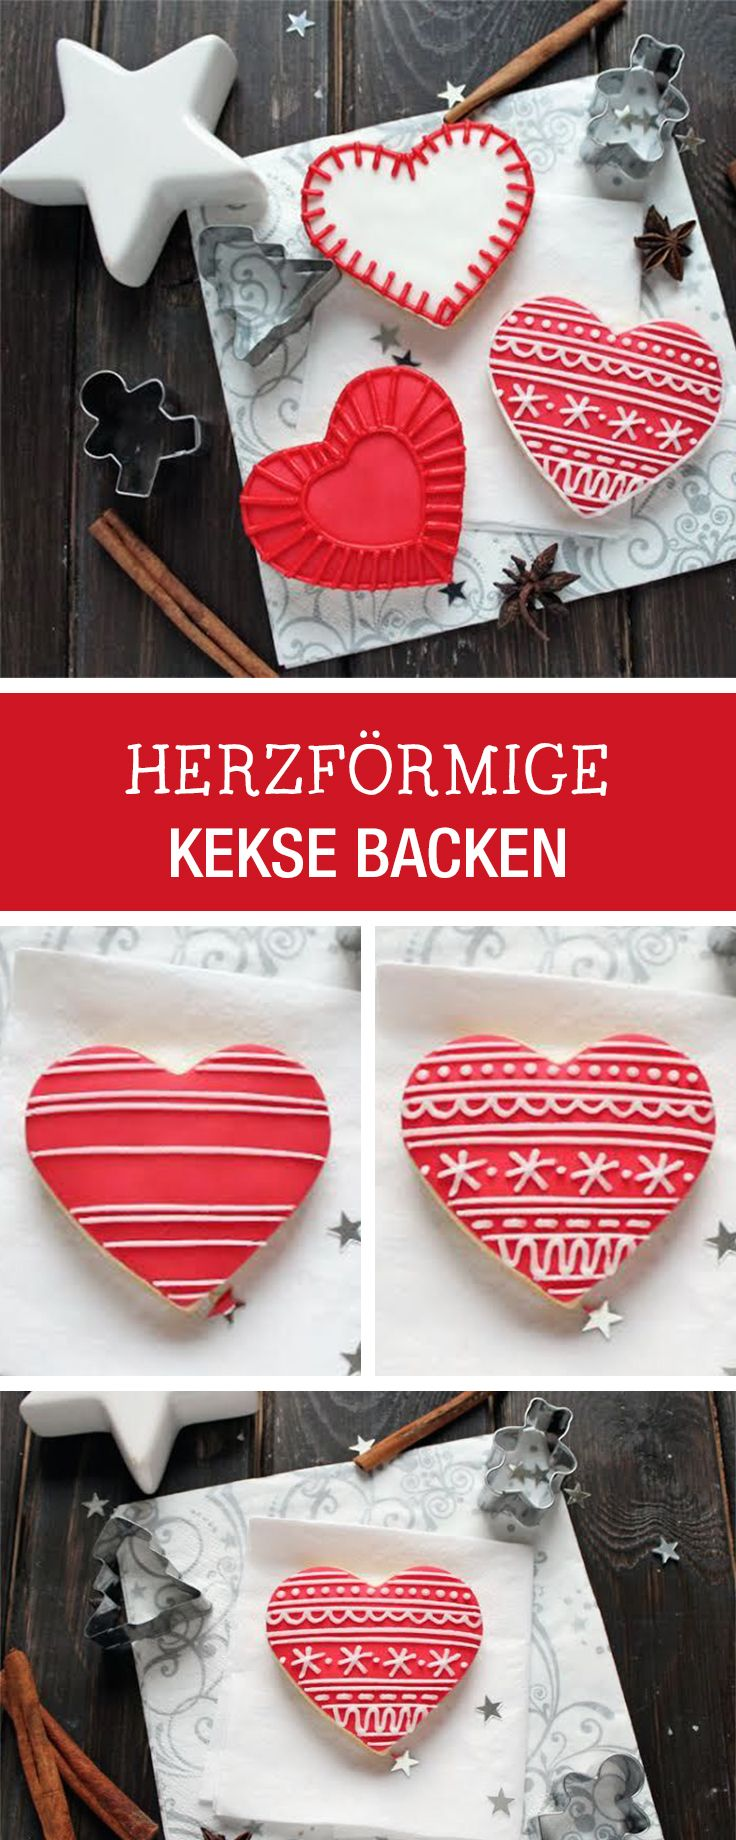 Kekse in Herzform backen und verzieren, weihnachtliche Rezepte / heart shaped cookies with christmas decor via DaWanda.com